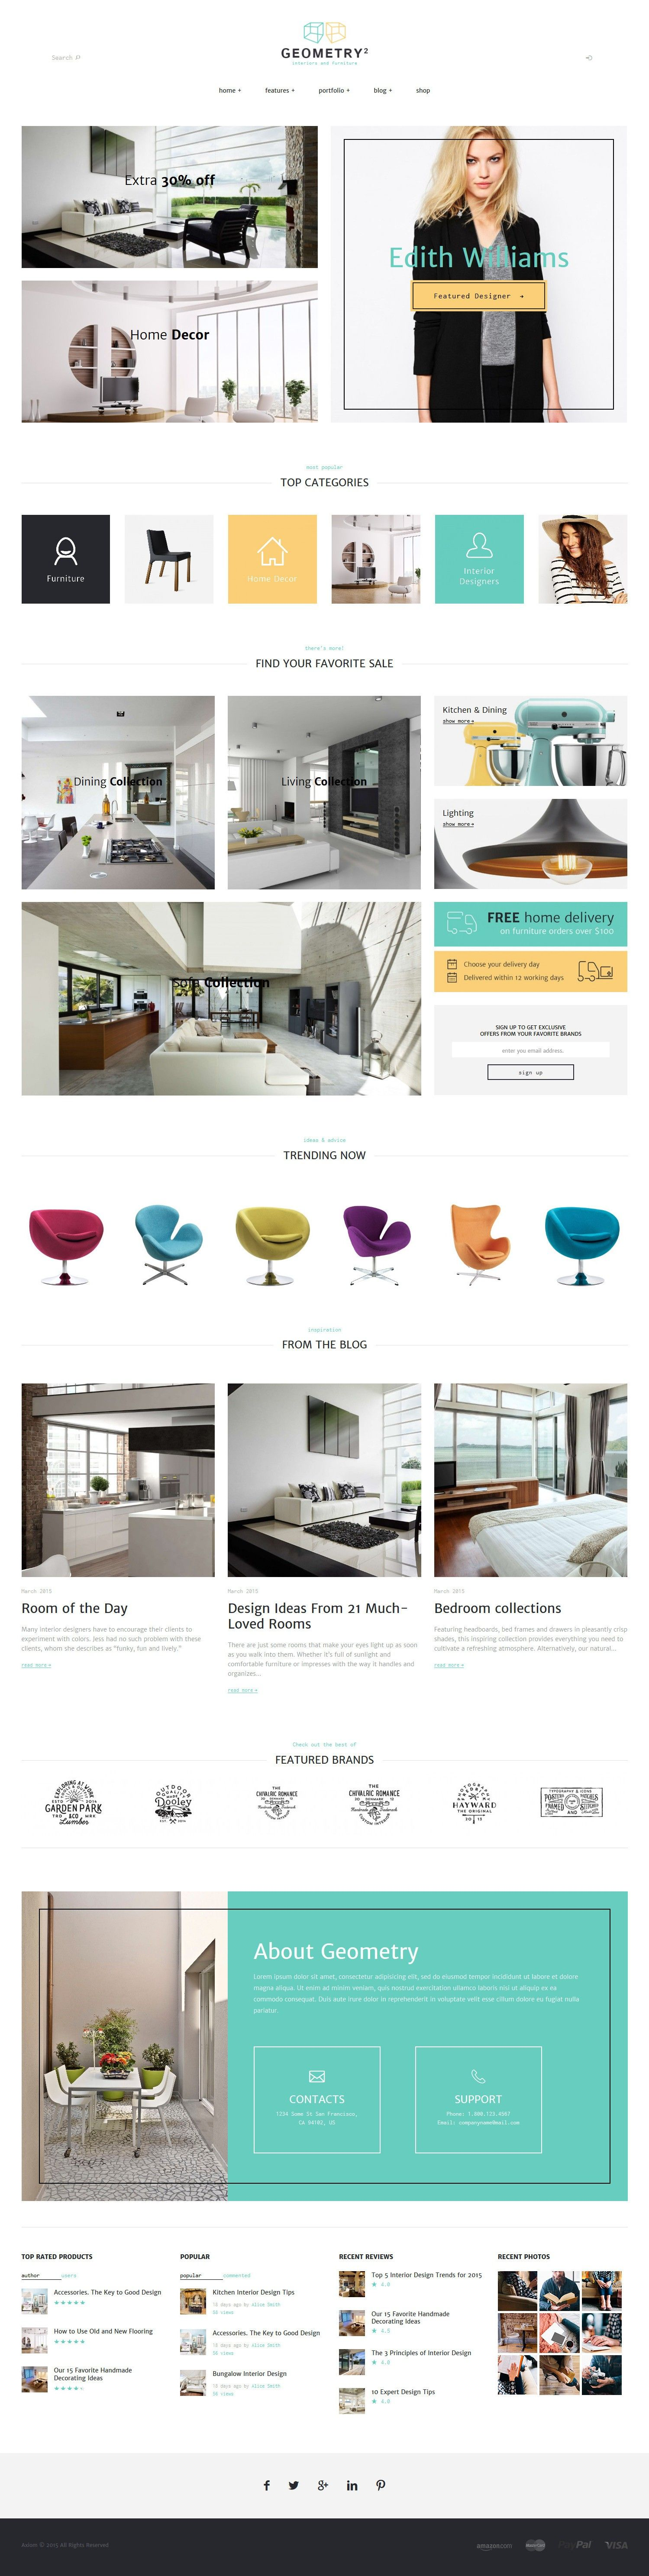 20 New Awesomely Design Premium Templates Of 27 March 2015